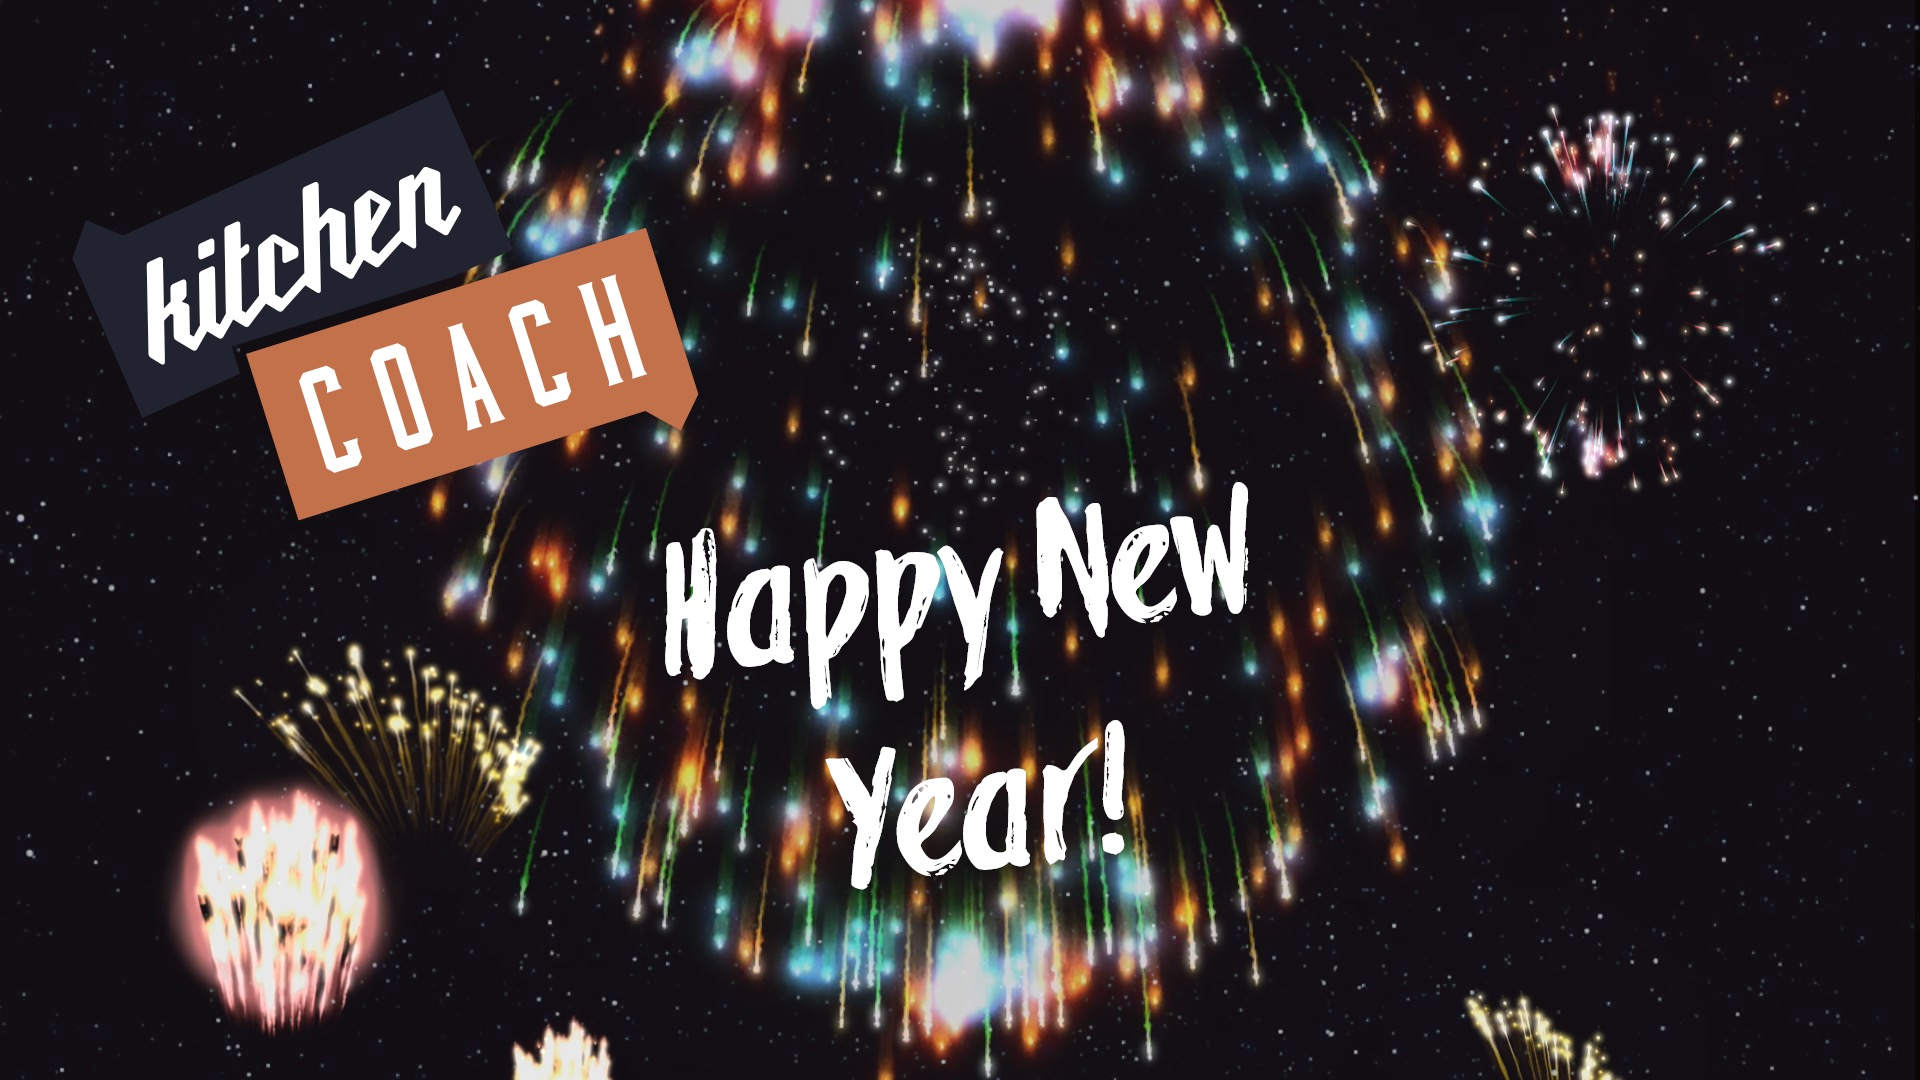 Kitchencoach - Happy New Year!